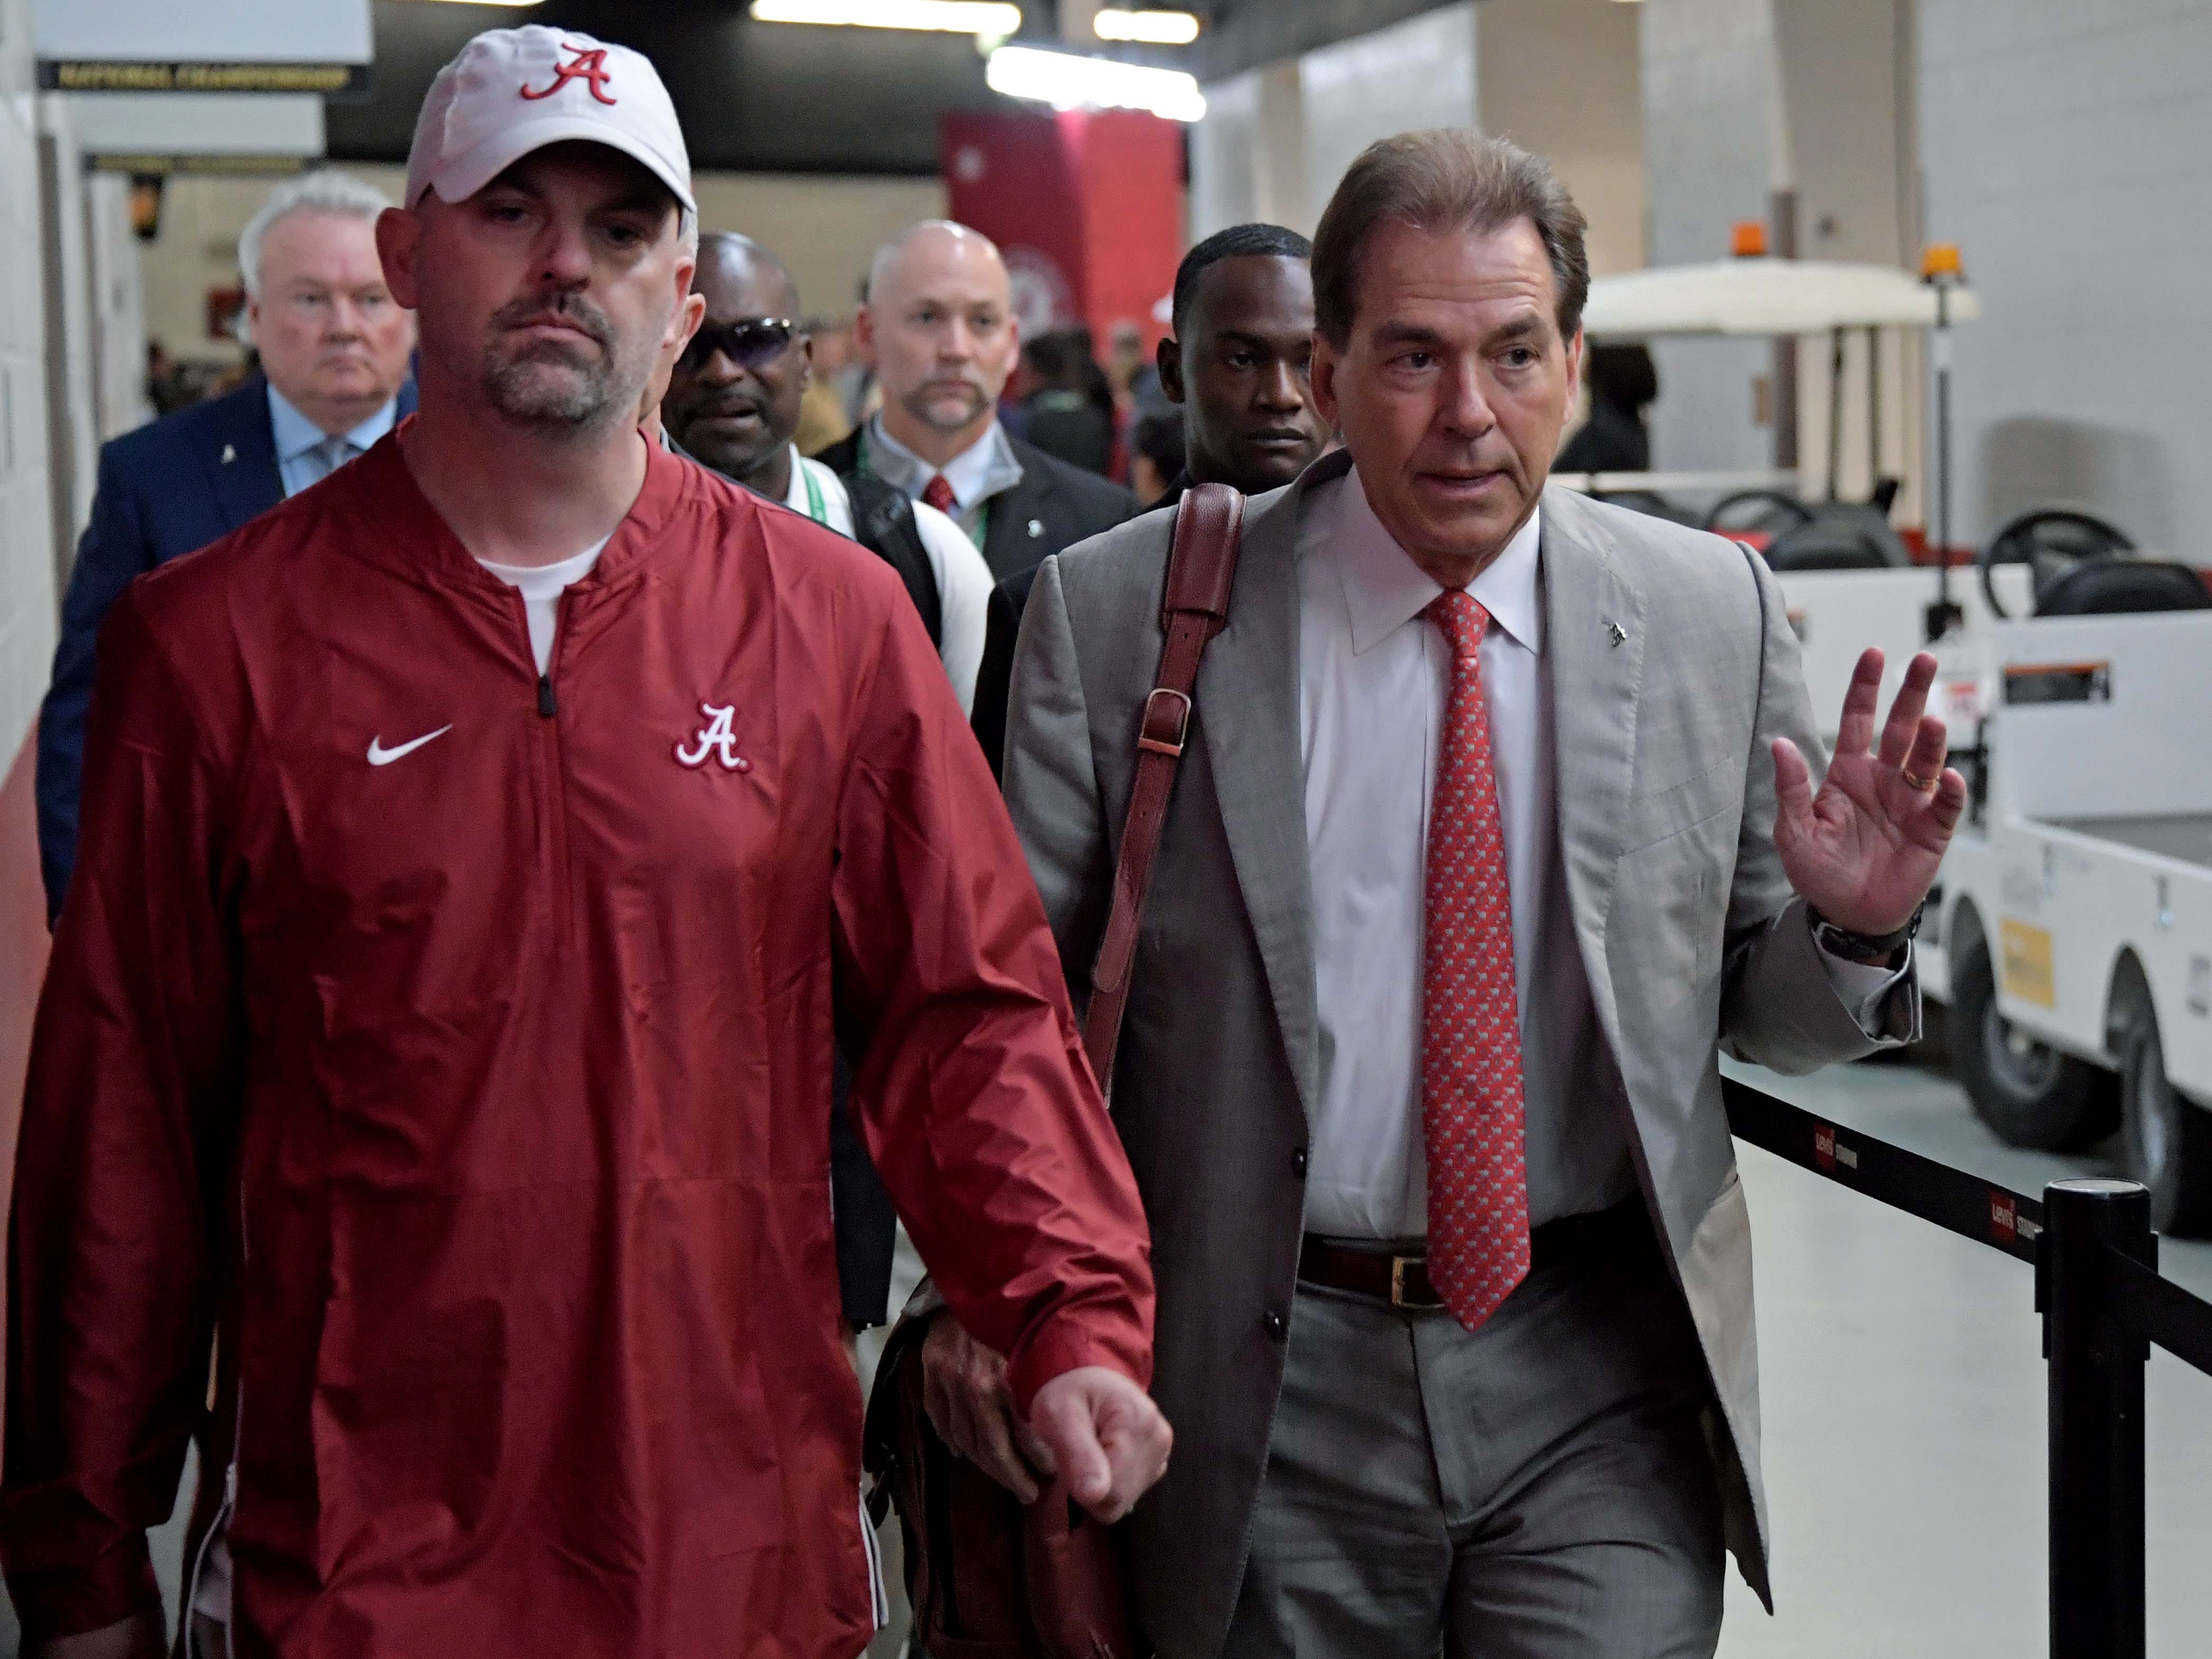 Alabama Crimson Tide head coach Nick Saban walks to the locker room before the 2019 College Football Playoff Championship game against the Clemson Tigers at Levi's Stadium.